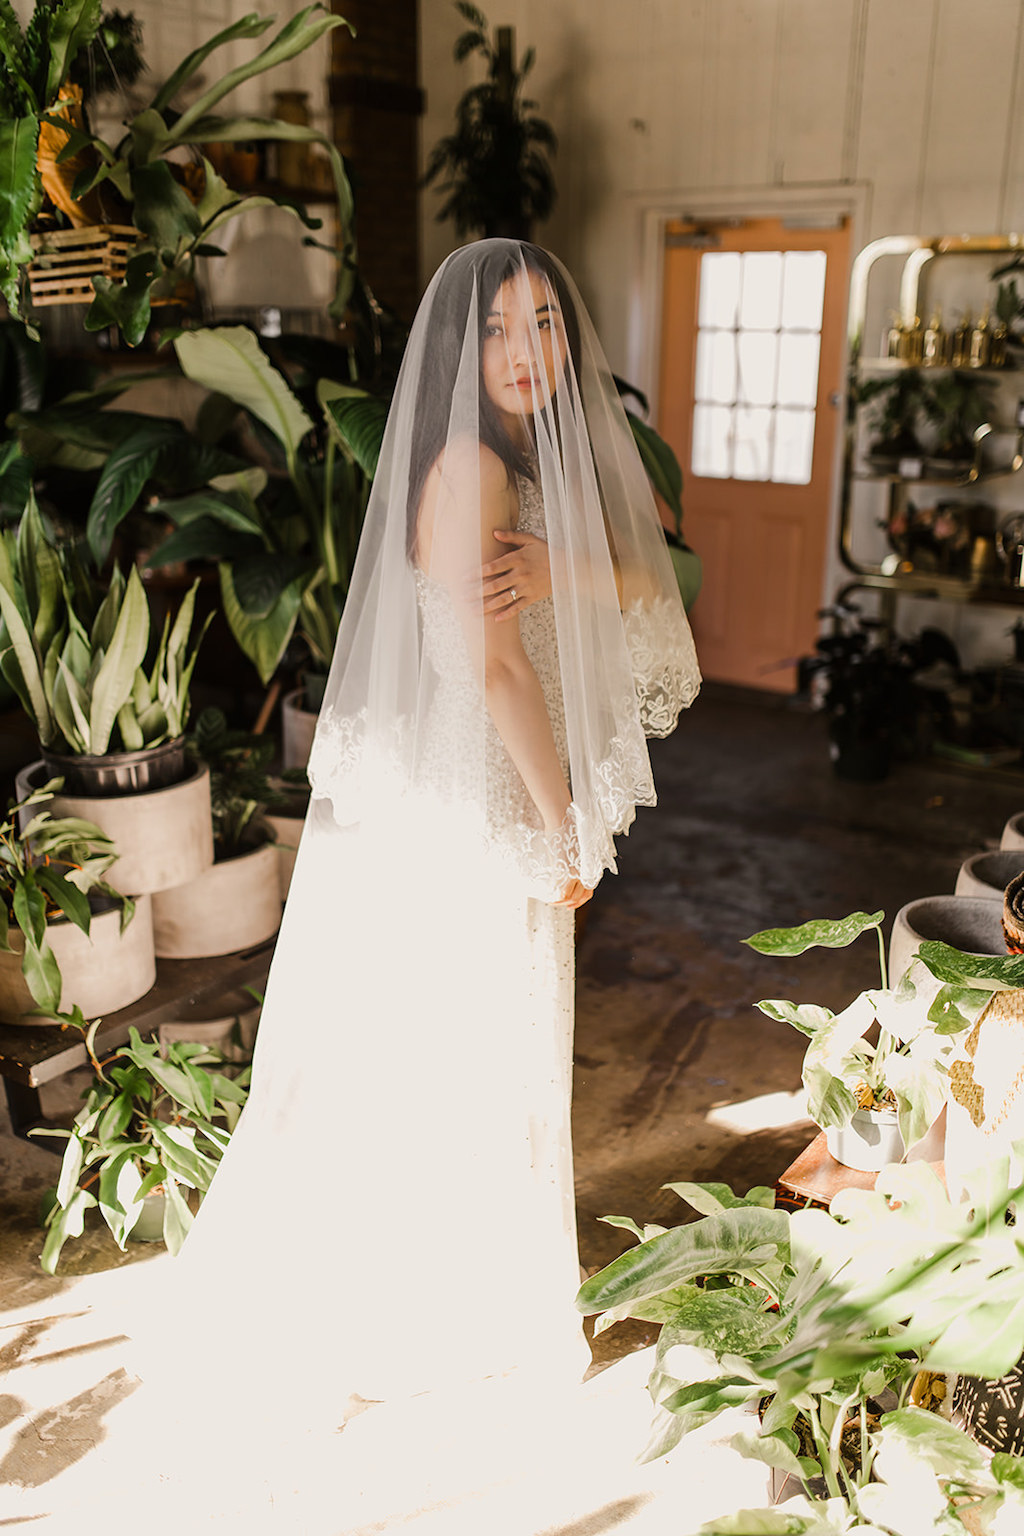 Indoor Bridal Portrait with Veil and Greenery | Tampa Intimate Wedding Venue Fancy Free Nursery